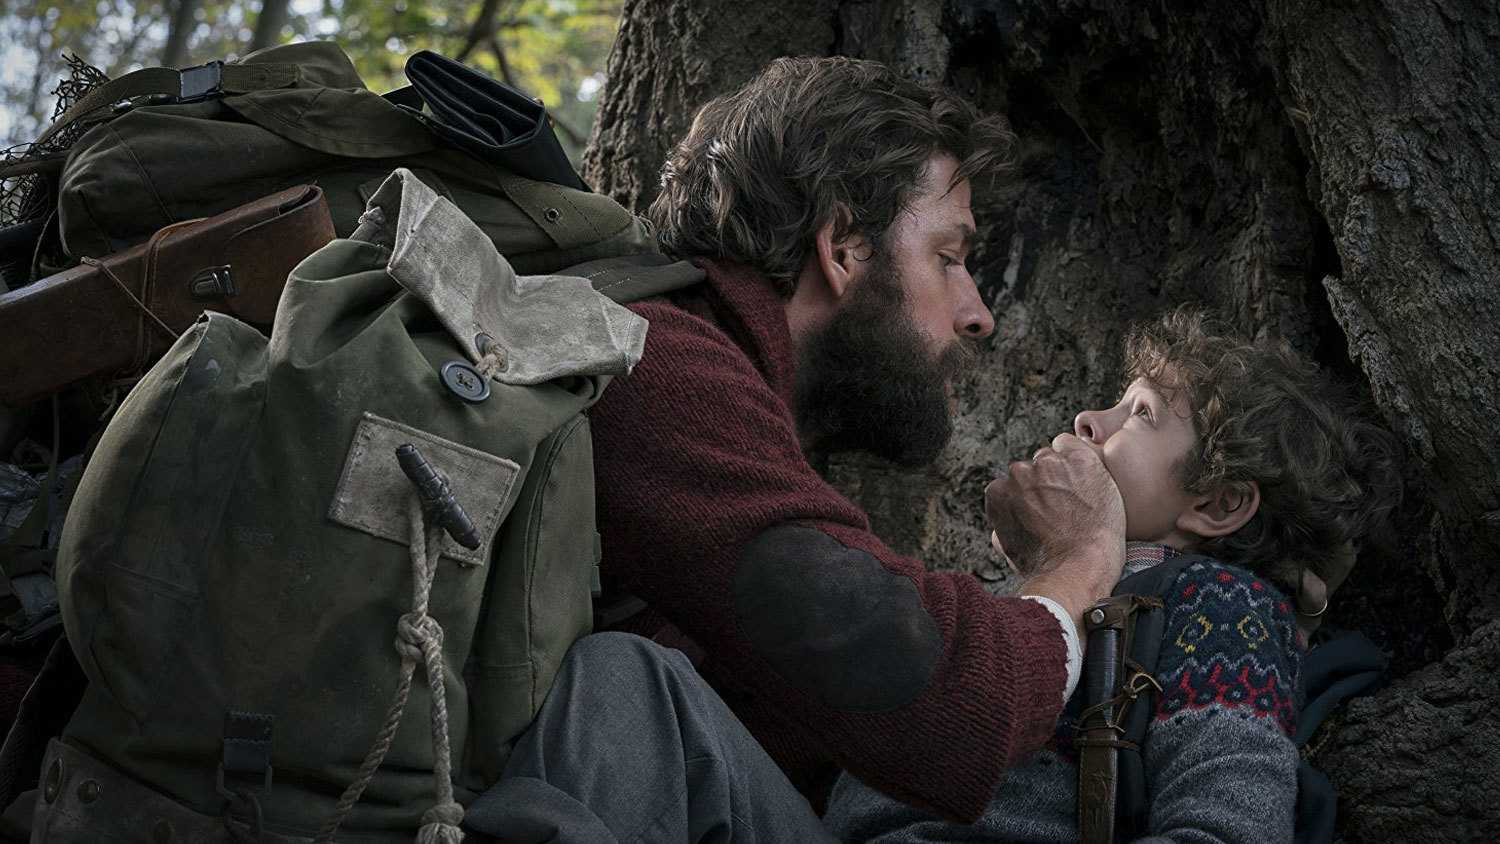 13 Things We Learned About A Quiet Place from John Krasinski